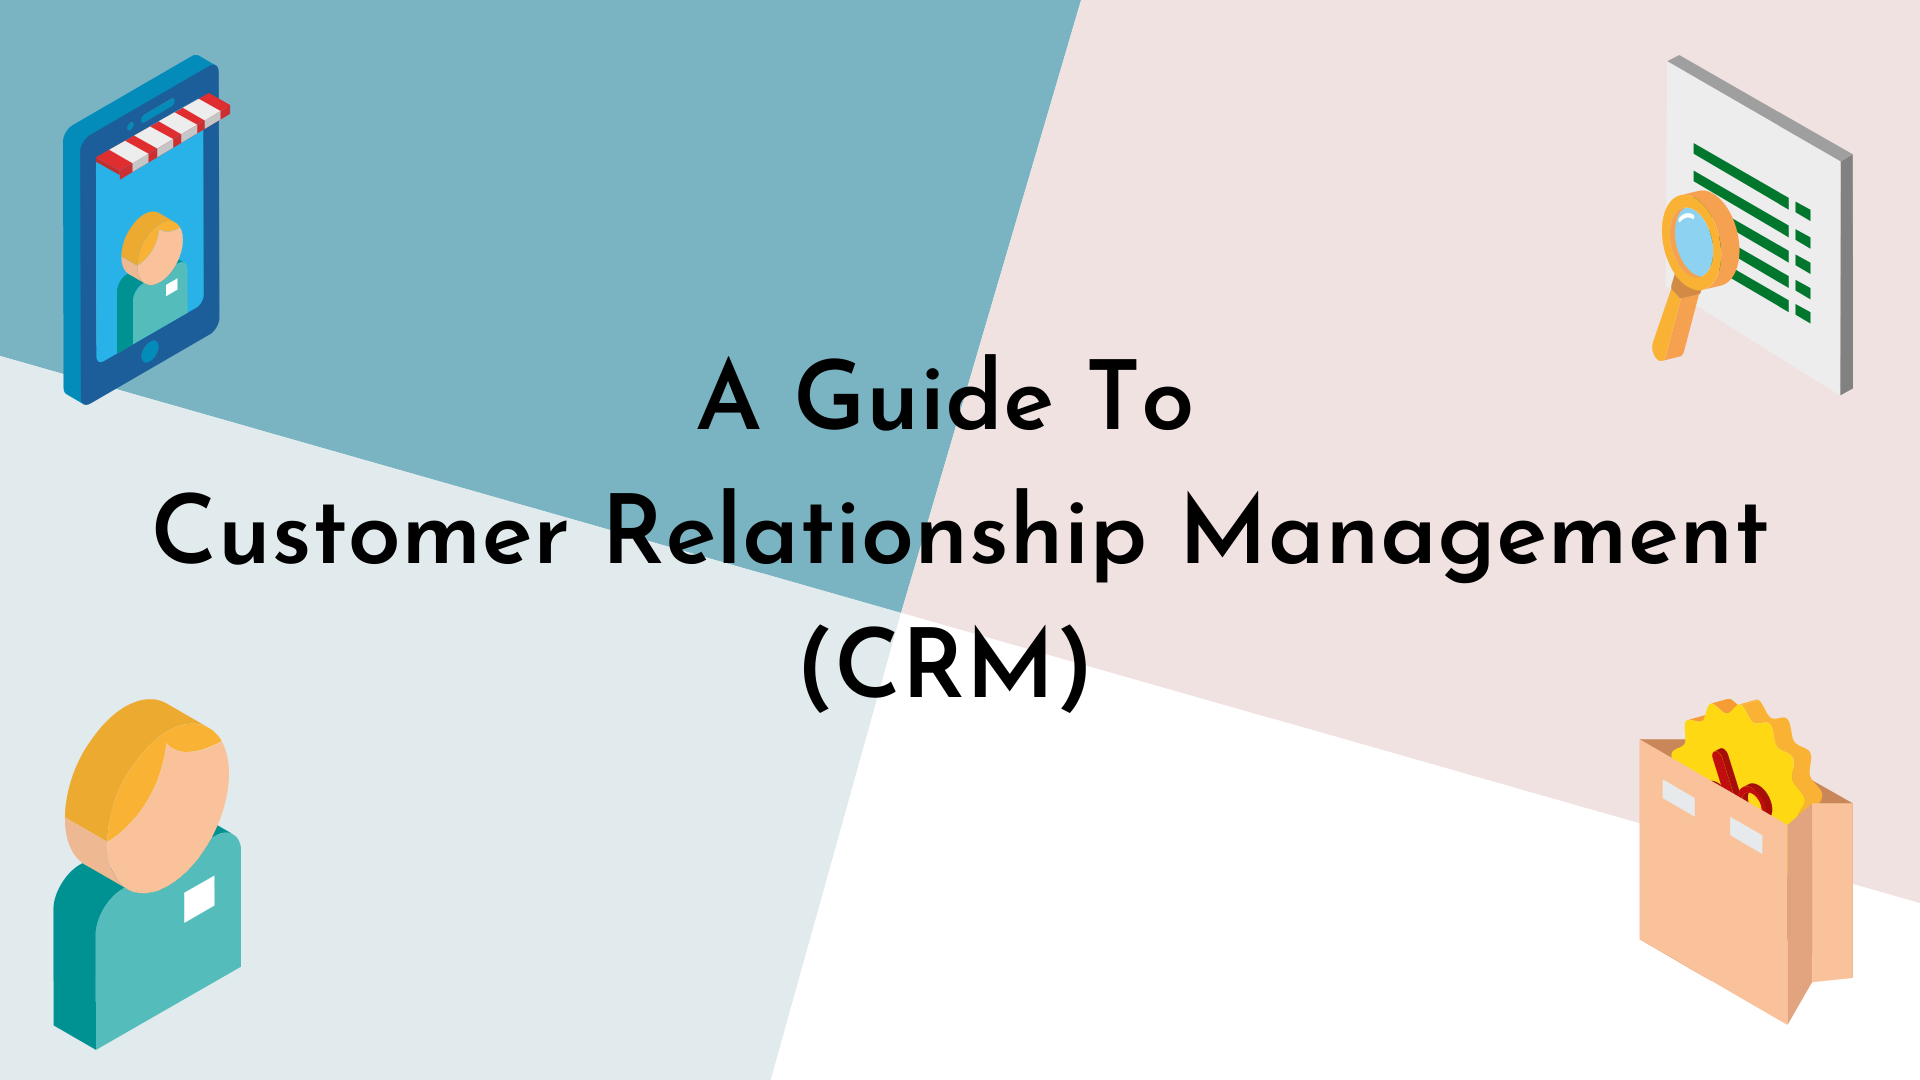 A Guide to Customer Relationship Management